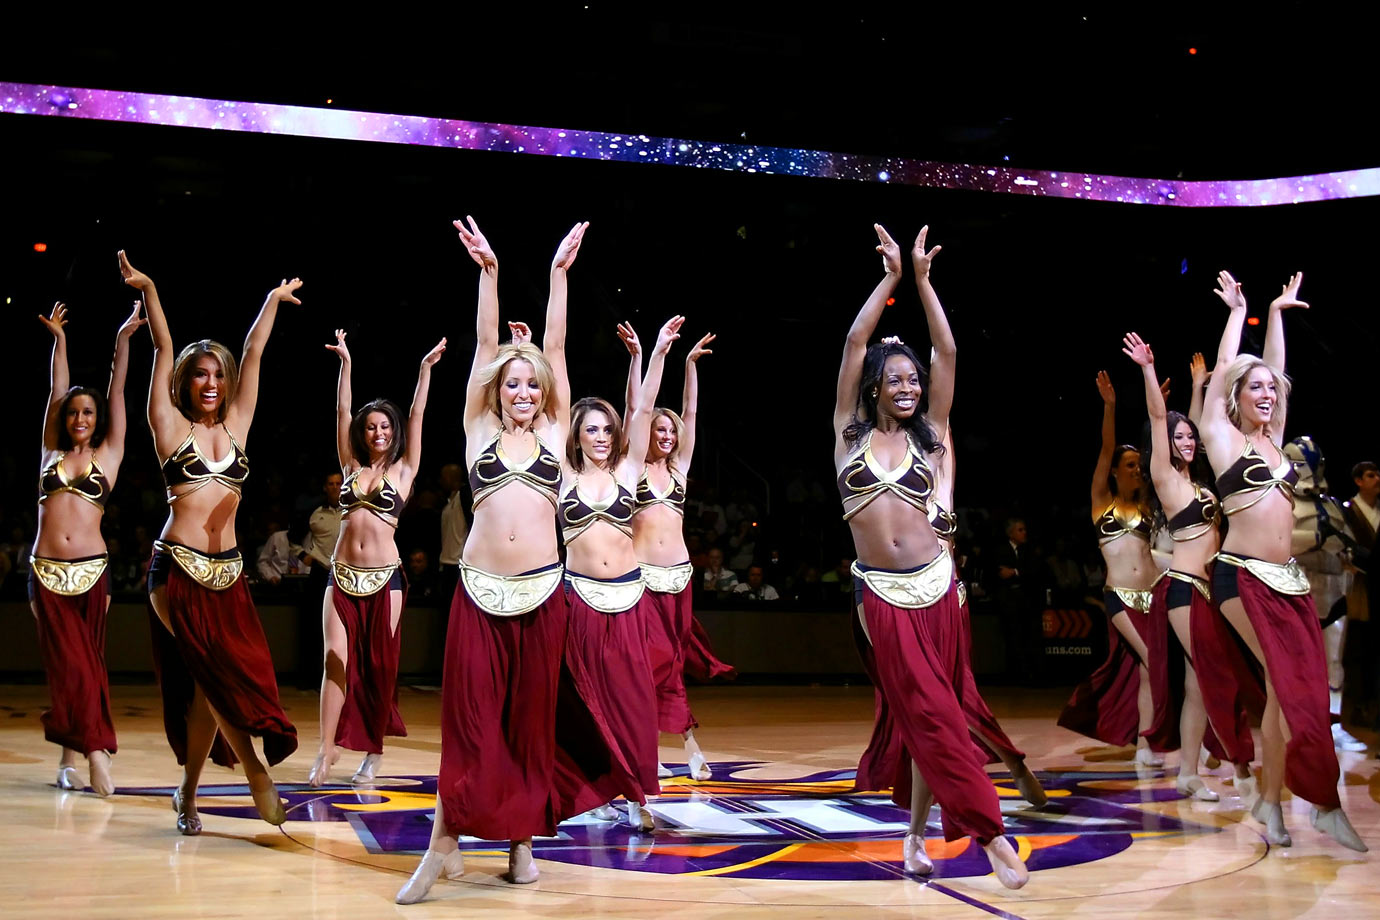 The Phoenix Suns dancers perform in Princess Leia-themed outfits during the Suns game against the Sacramento Kings on Feb. 13, 2011 at US Airways Center in Phoenix.